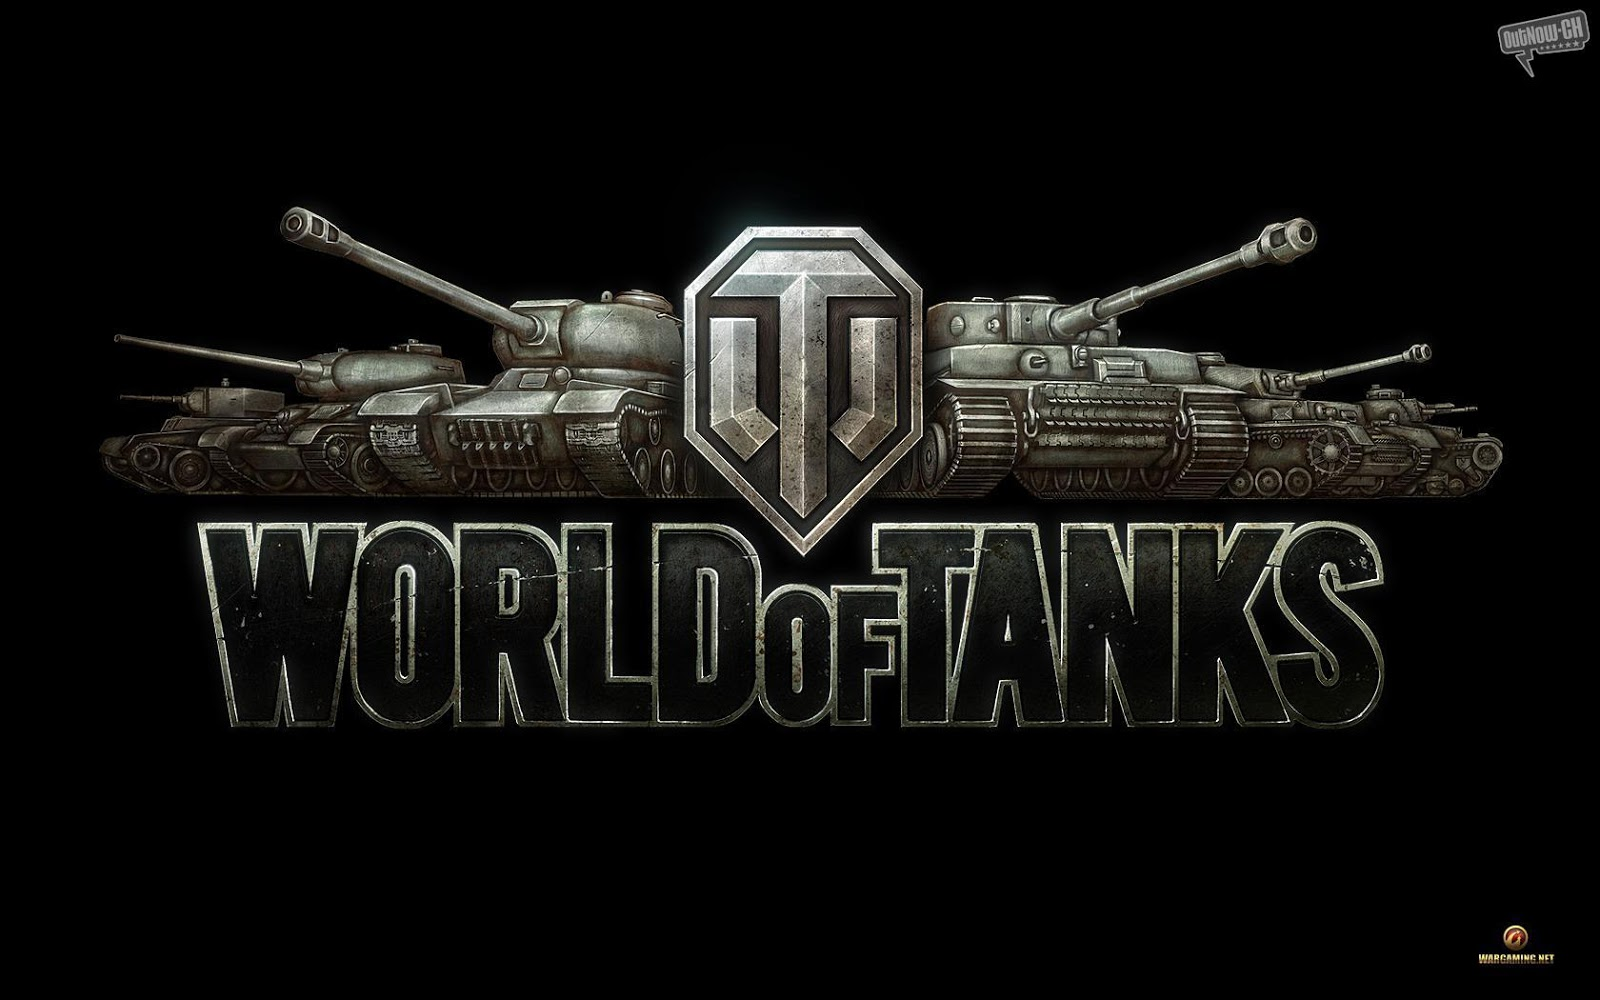 http://1.bp.blogspot.com/-r4CL4HS10Yc/UUFDXcinsoI/AAAAAAAAA8k/zu6bUtoT8mQ/s1600/world+of+tanks+battle+wallpapers++1.jpg